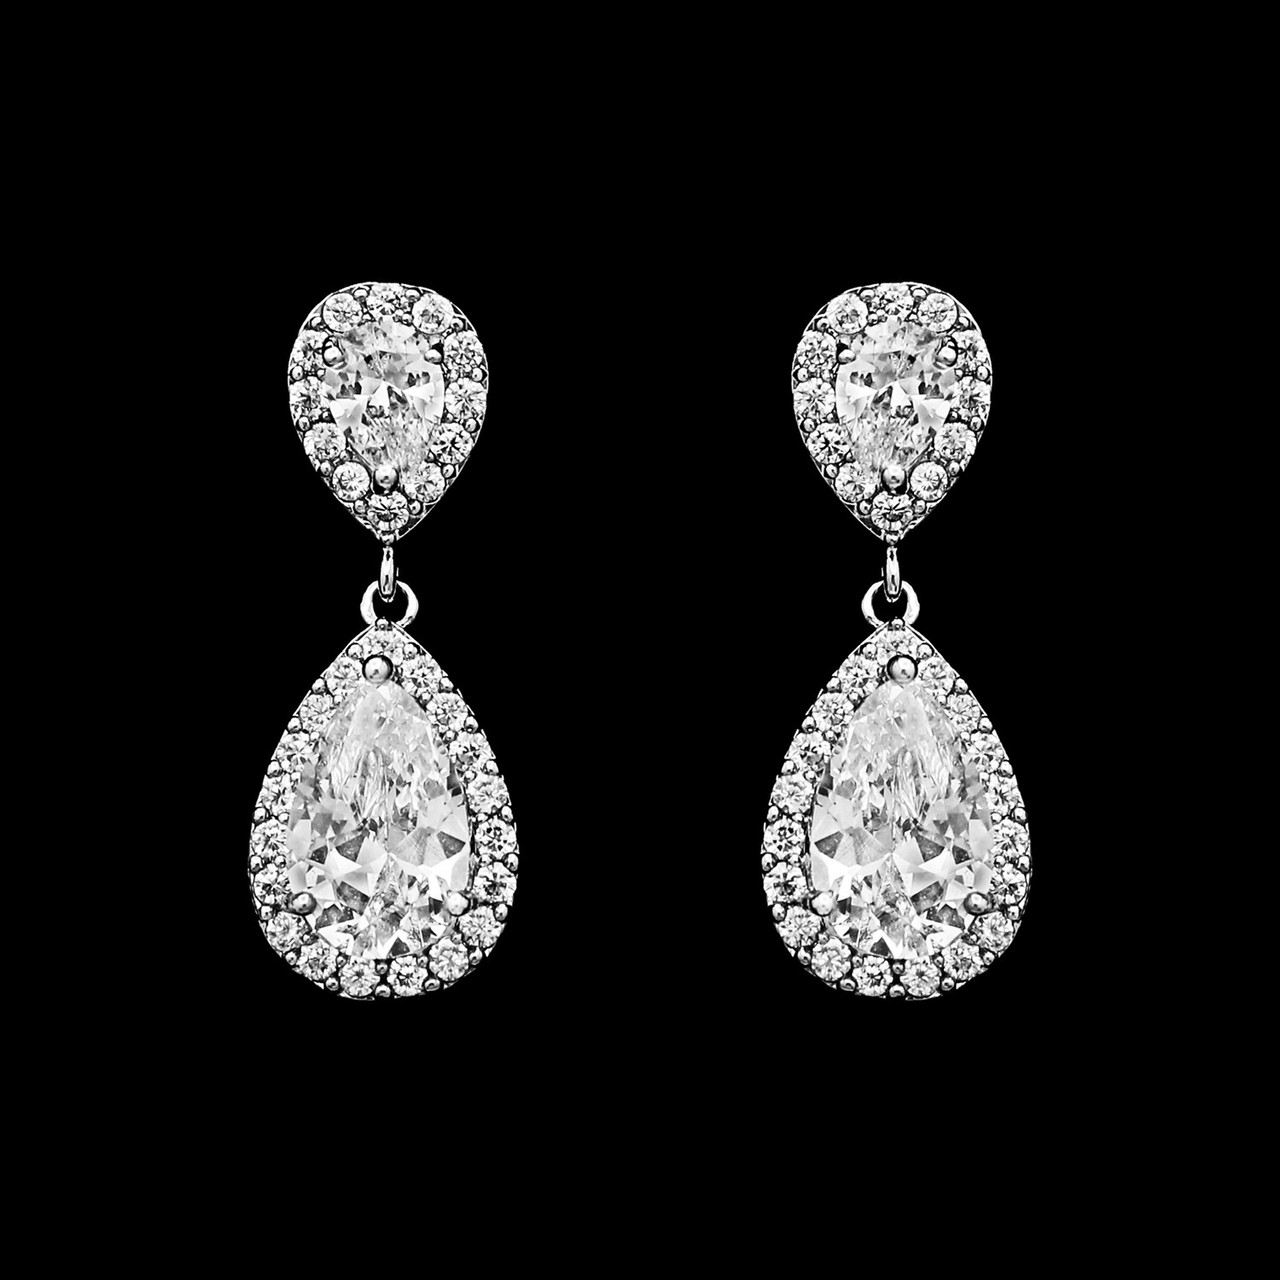 Formal Cubic Zirconia Earrings for Bridesmaids and Brides - #1213